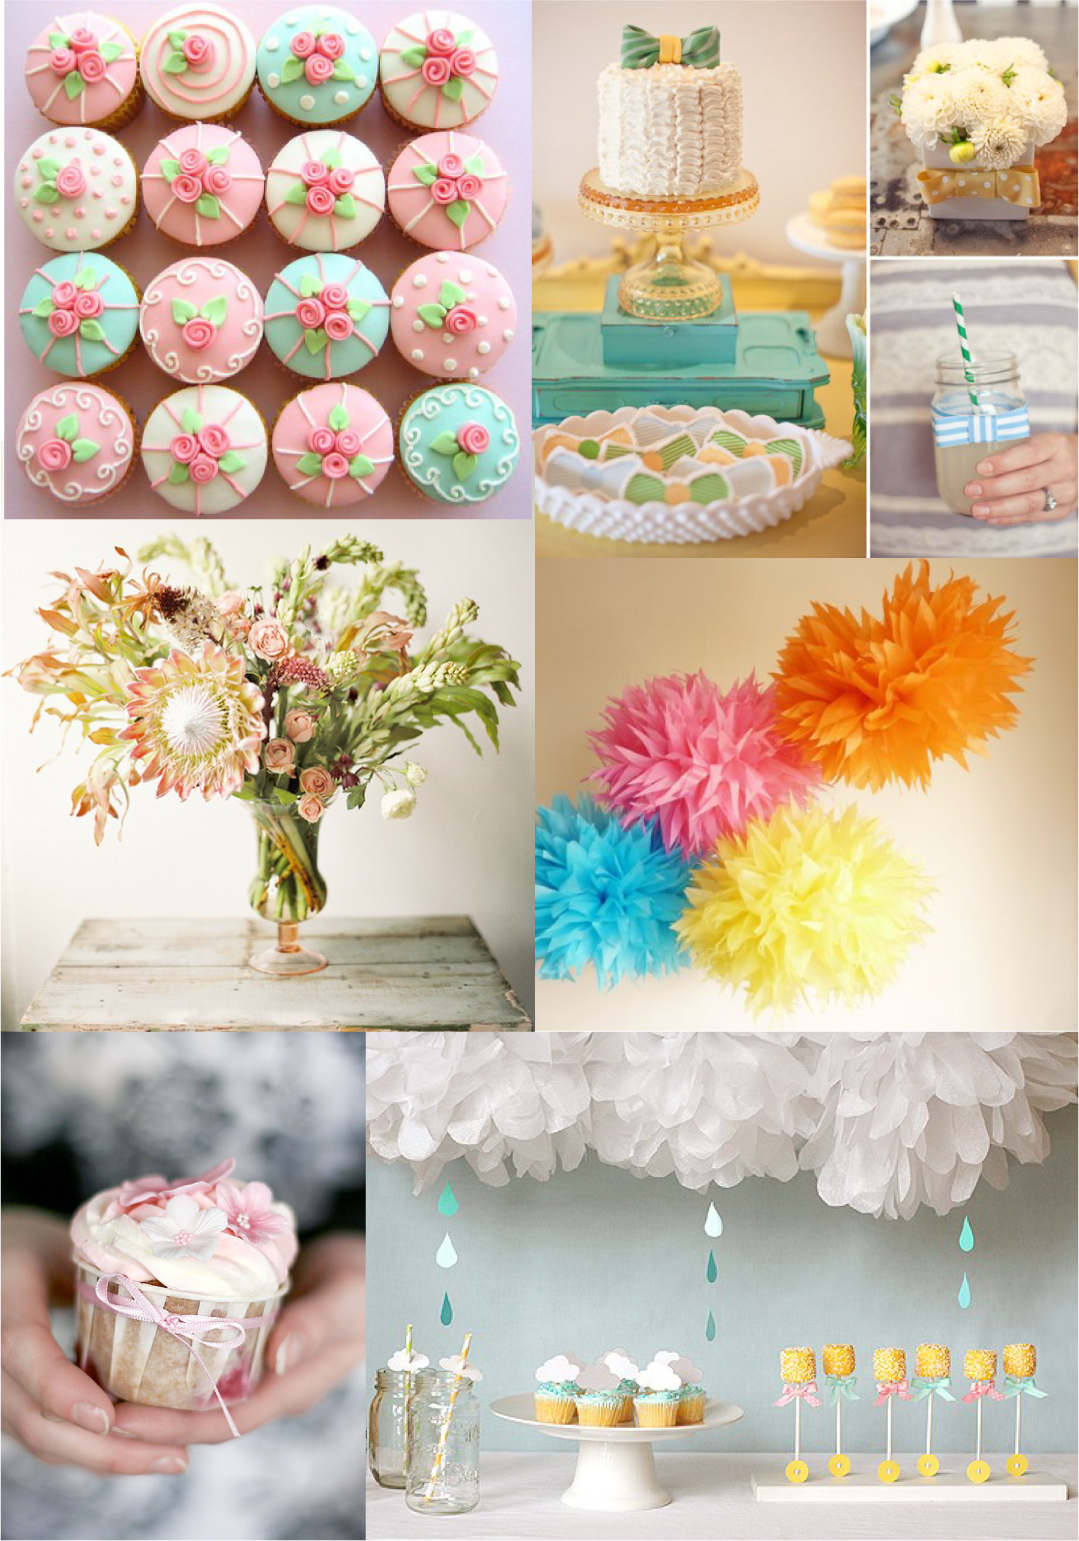 Elite Pinterest Baby Showers Ideas | Cupcakes: Hello Naomi 2. Cake intended for Summer Baby Shower Ideas